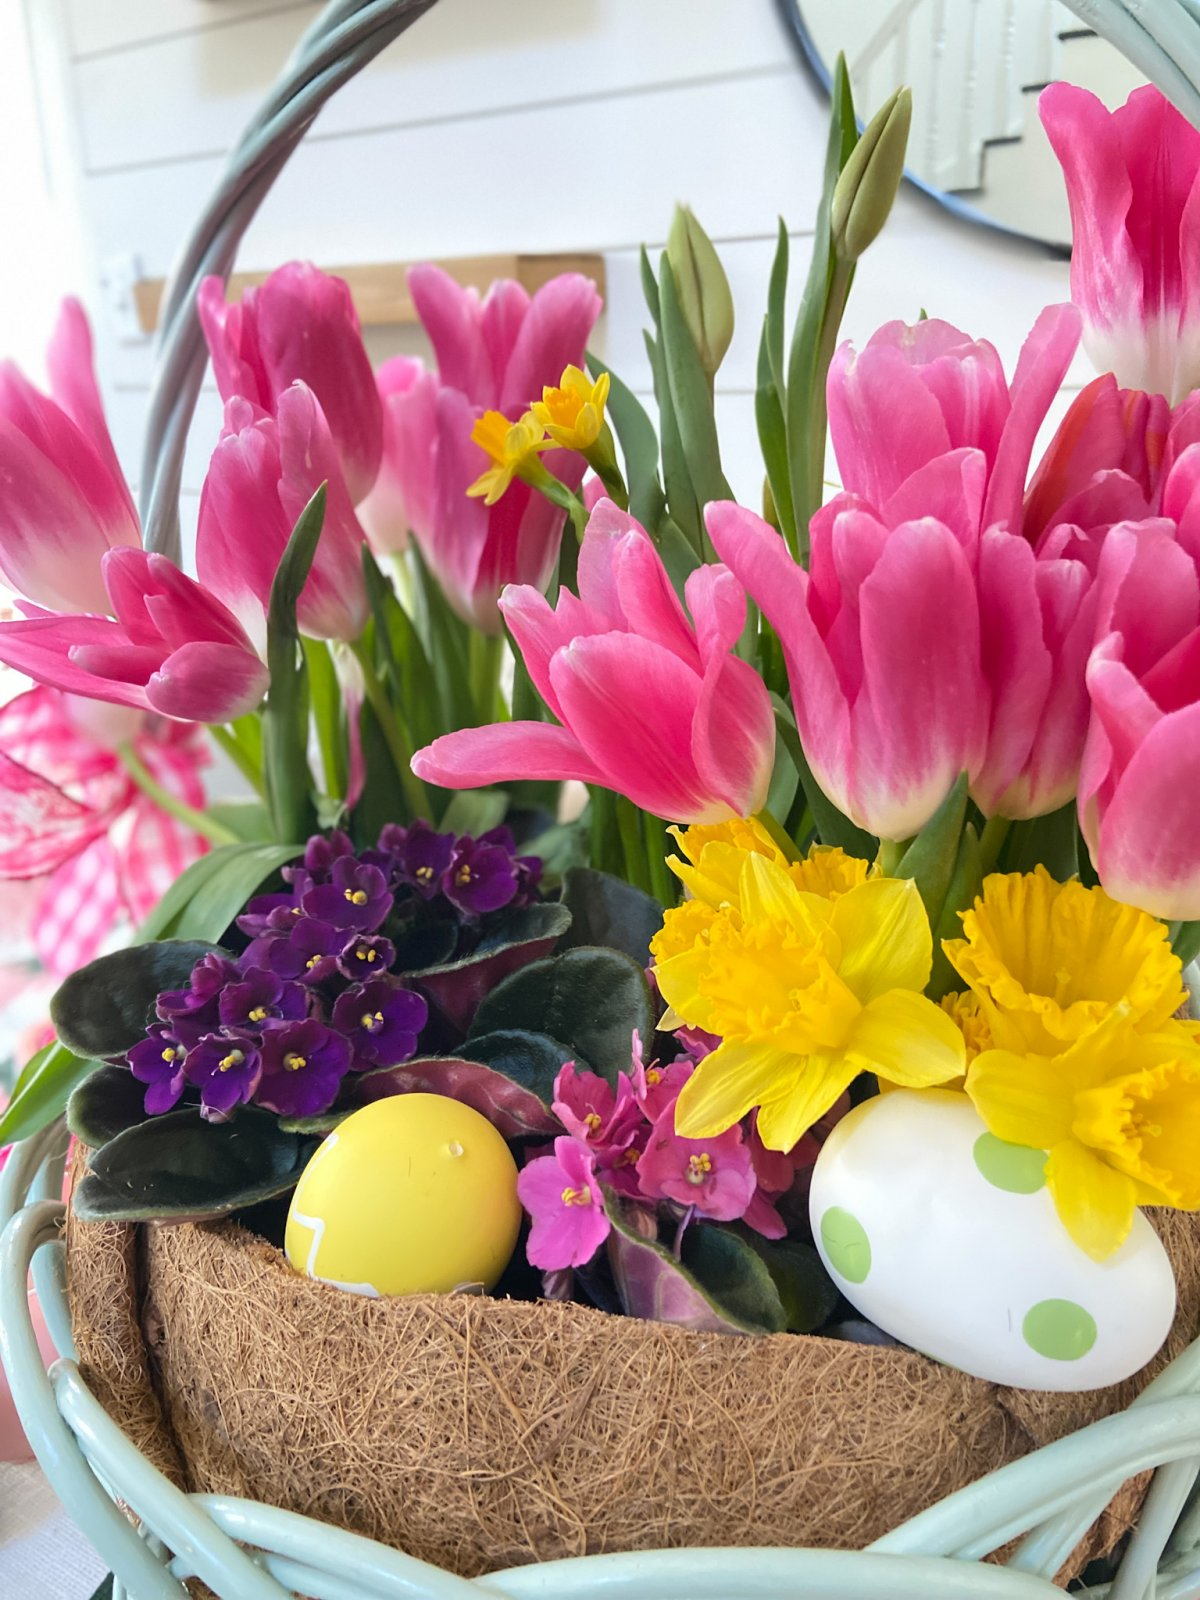 Easter Basket Living Floral Centerpiece. Take an Easter basket, plant flowers inside and cover with a dollar store coir liner for a beautiful spring living centerpiece.